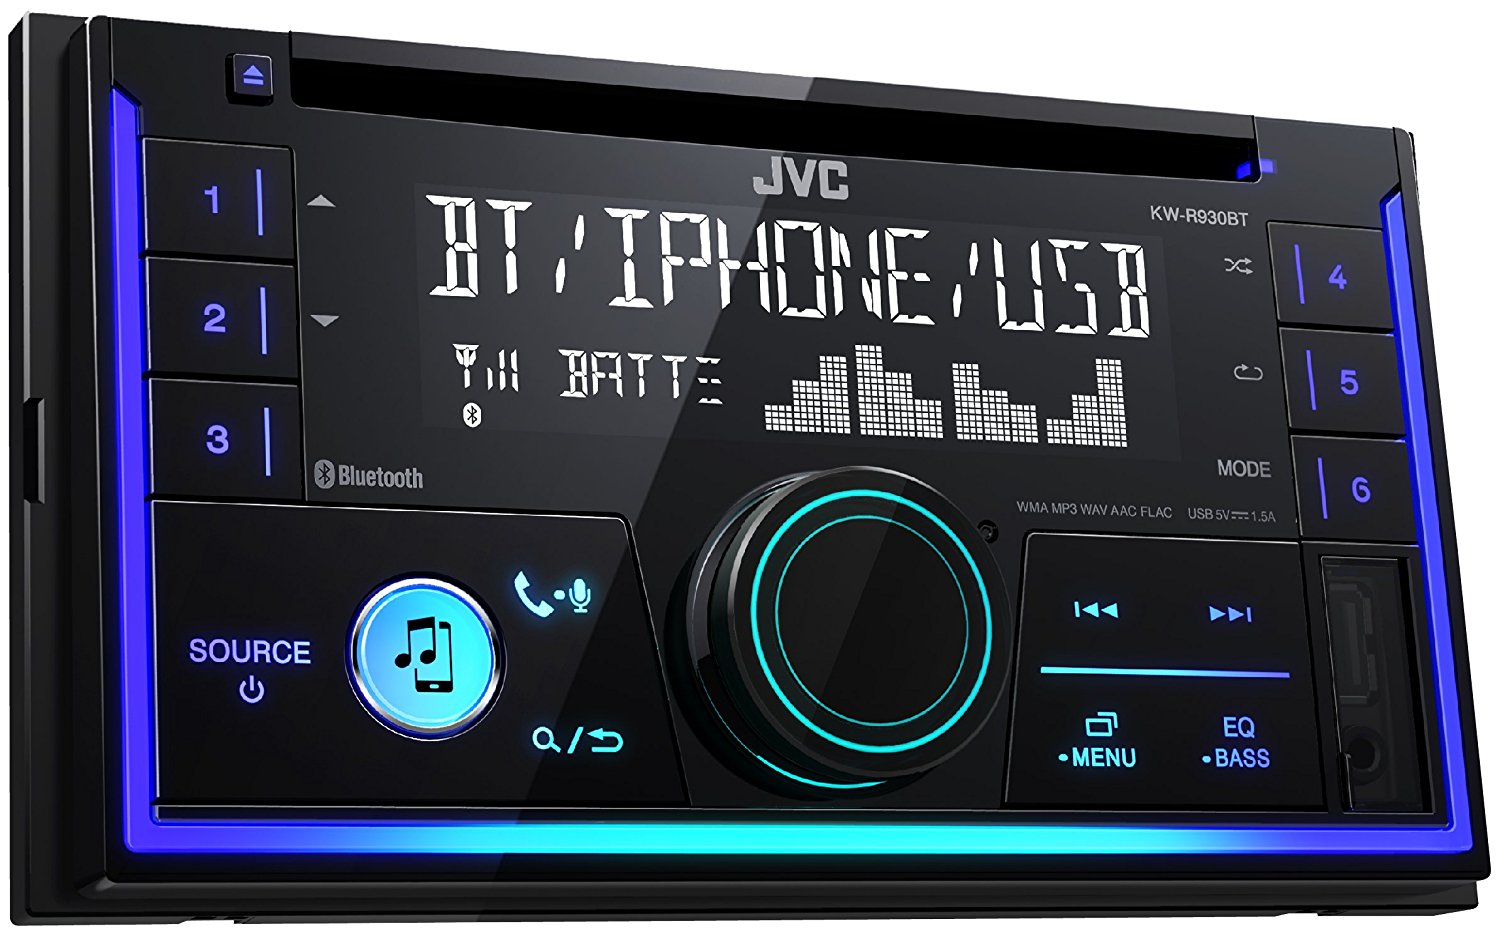 JVC In Car CD Receiver|2DIN|MP3|USB|Aux|Bluetooth|iPod-iPhone-Android-Blackberry